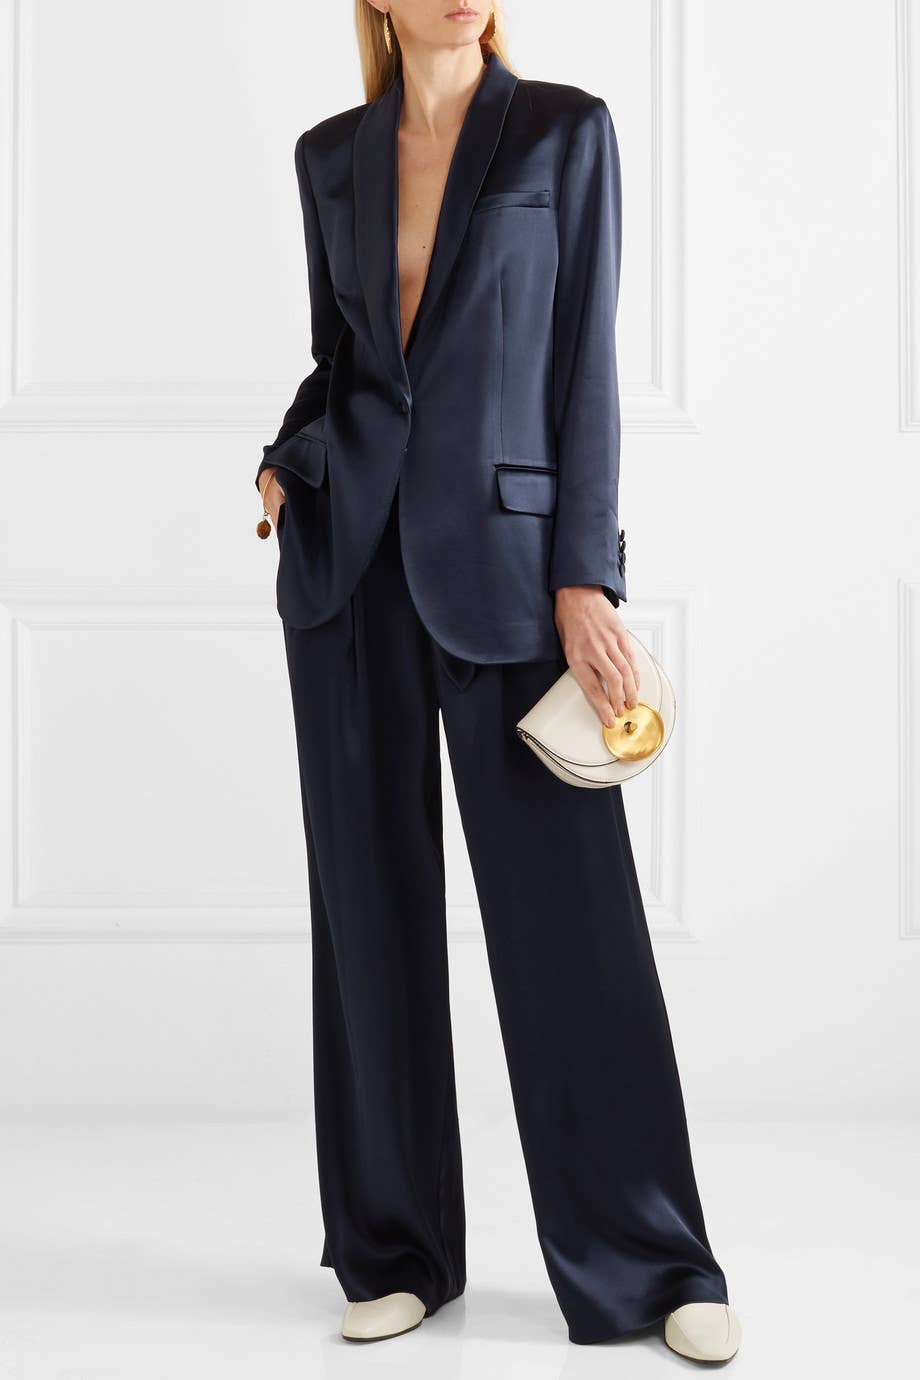 Stylish Dressy Womens Pant Suits To Wear To A Wedding